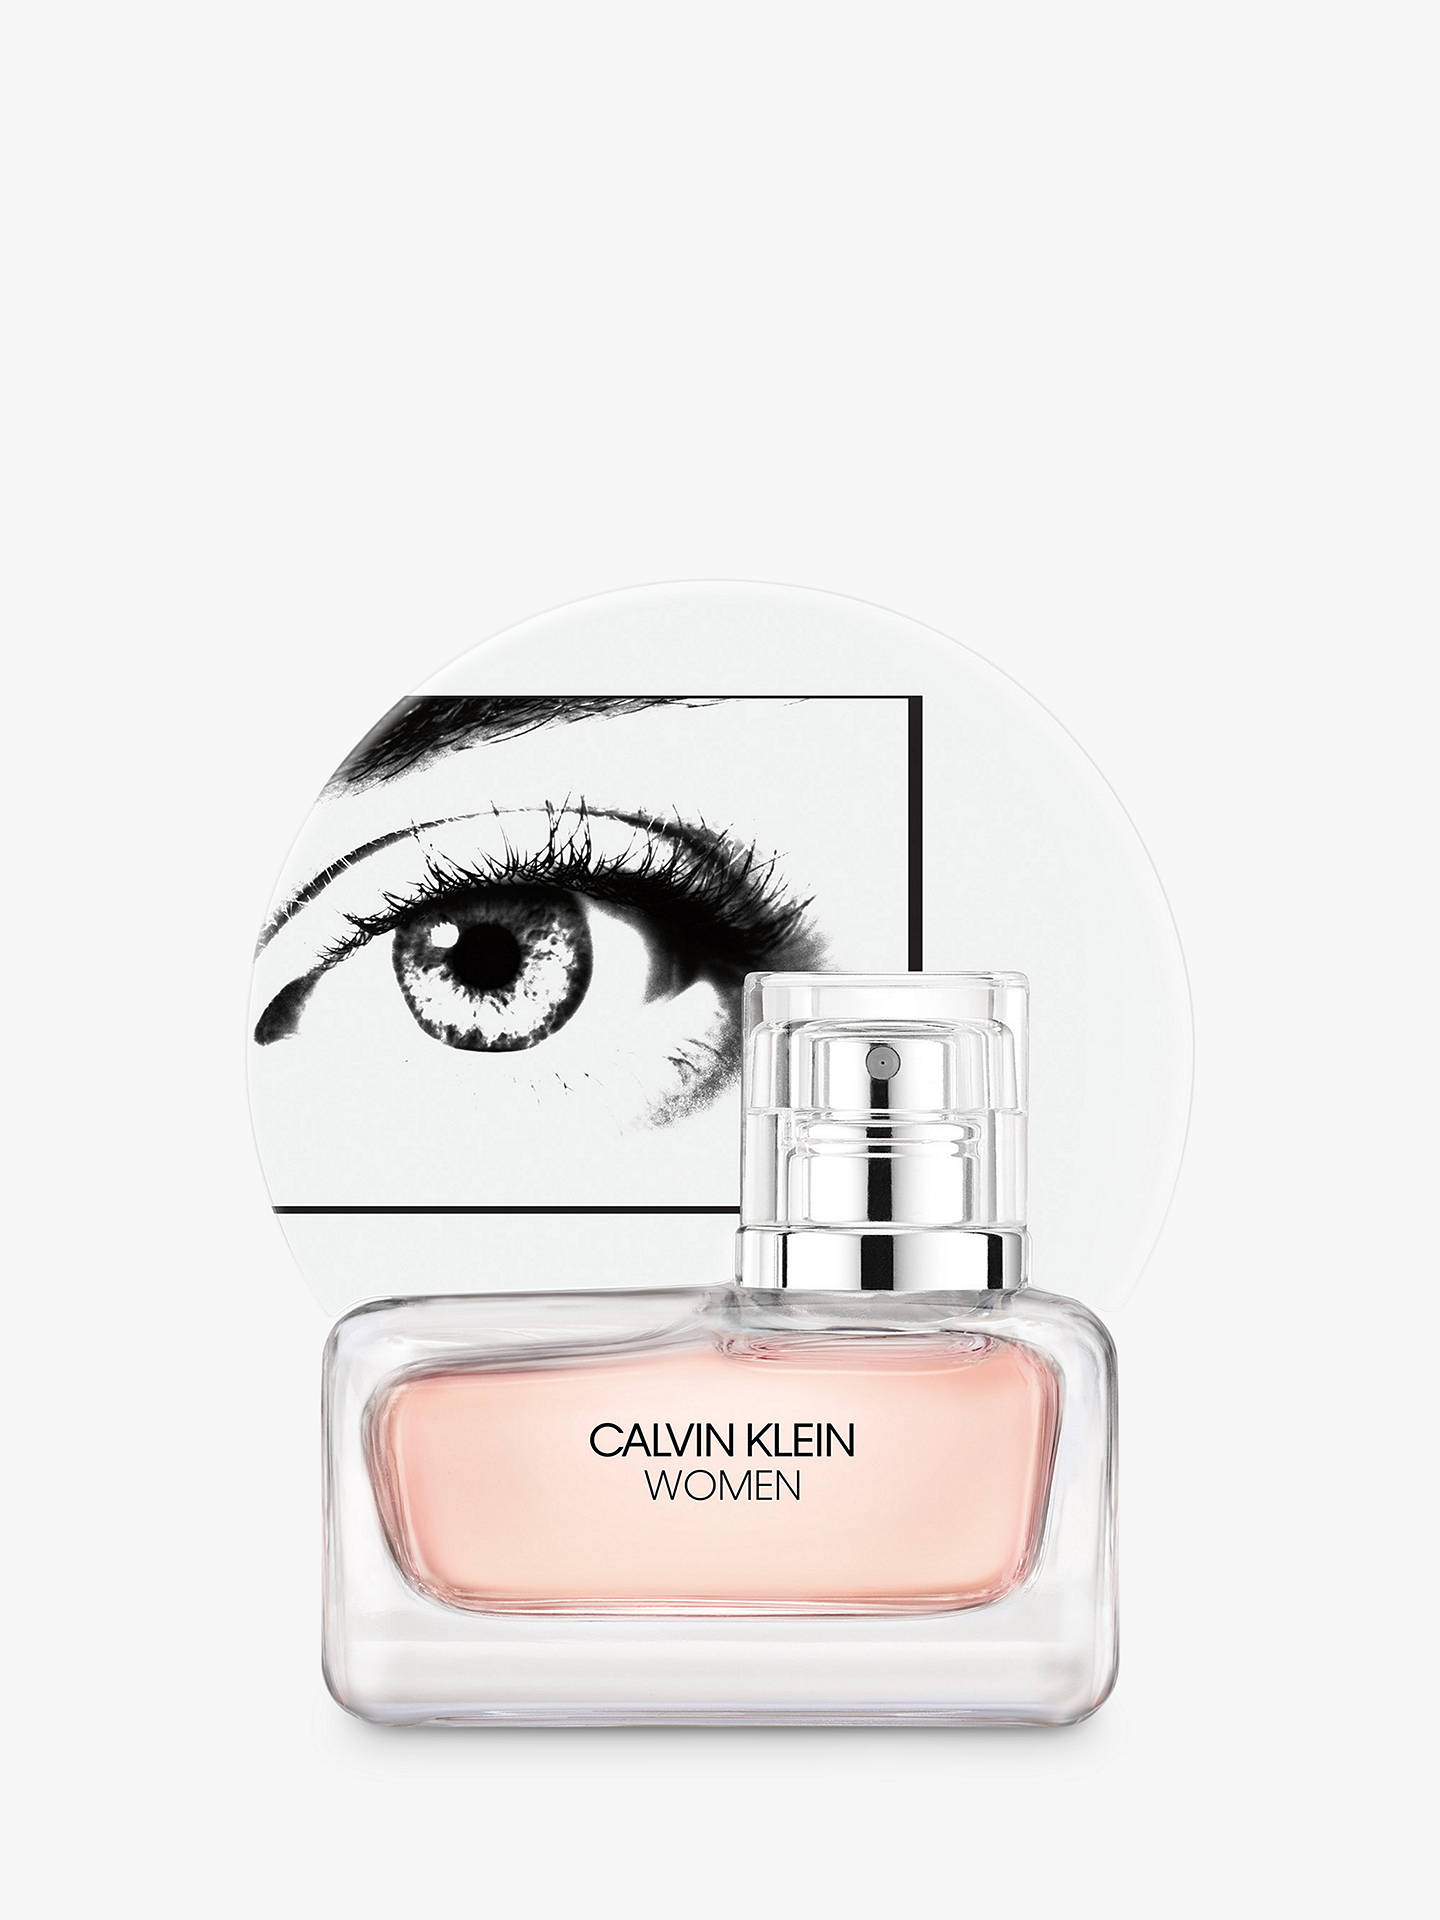 BuyCalvin Klein Women Eau de Parfum, 30ml Online at johnlewis.com